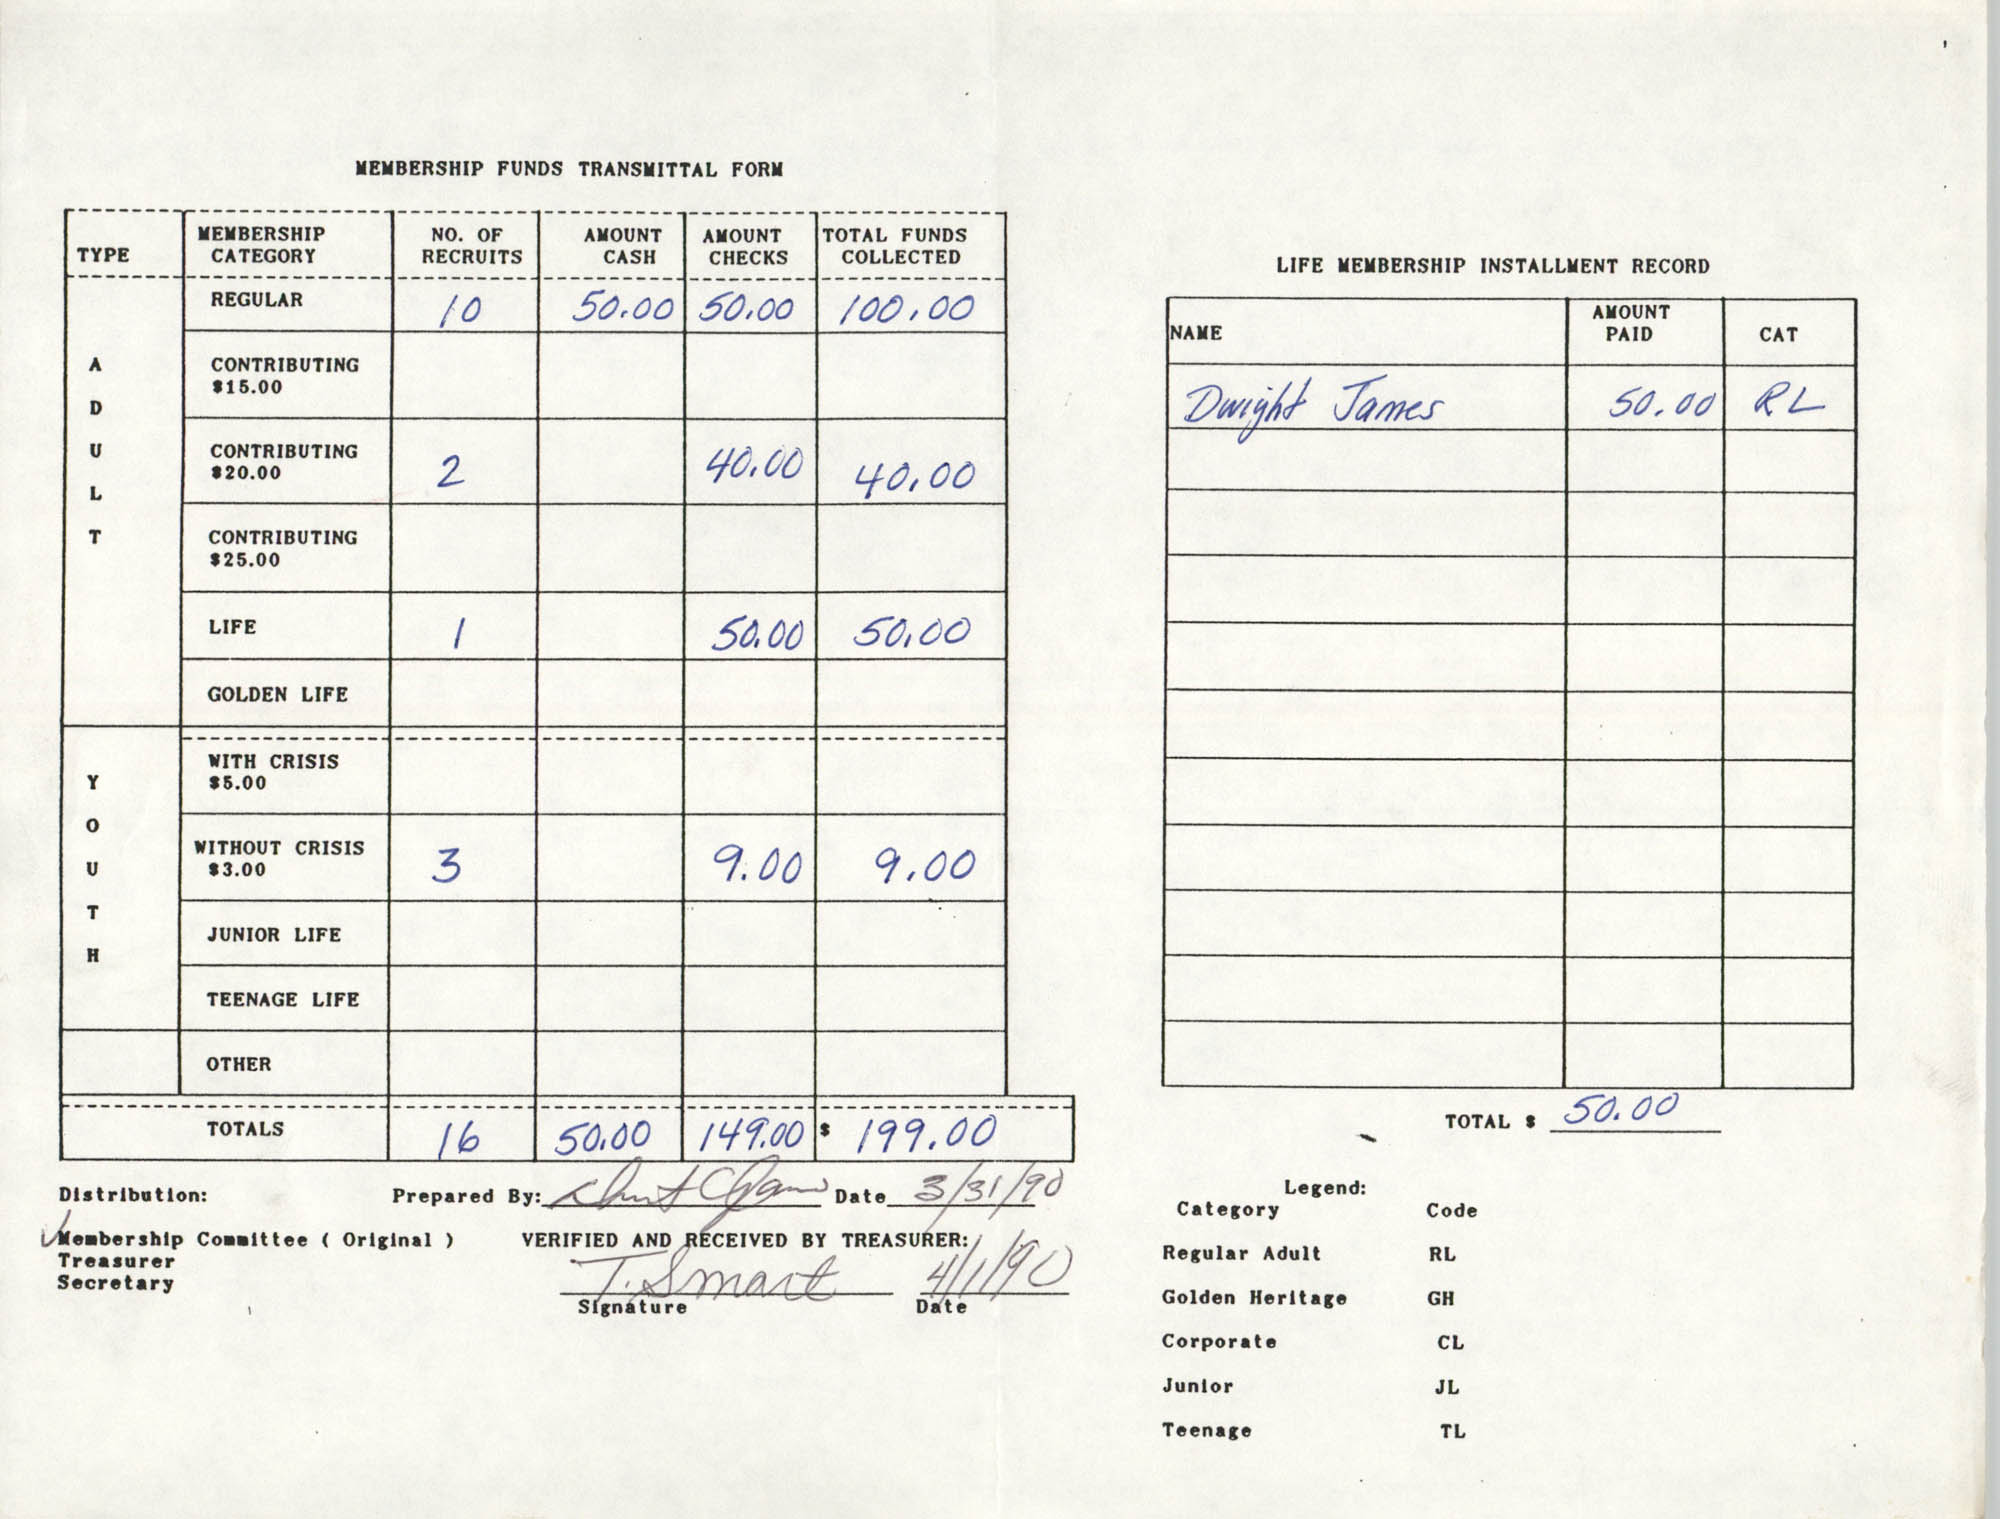 Charleston Branch of the NAACP Funds Transmittal Forms, March 1990, Page 4